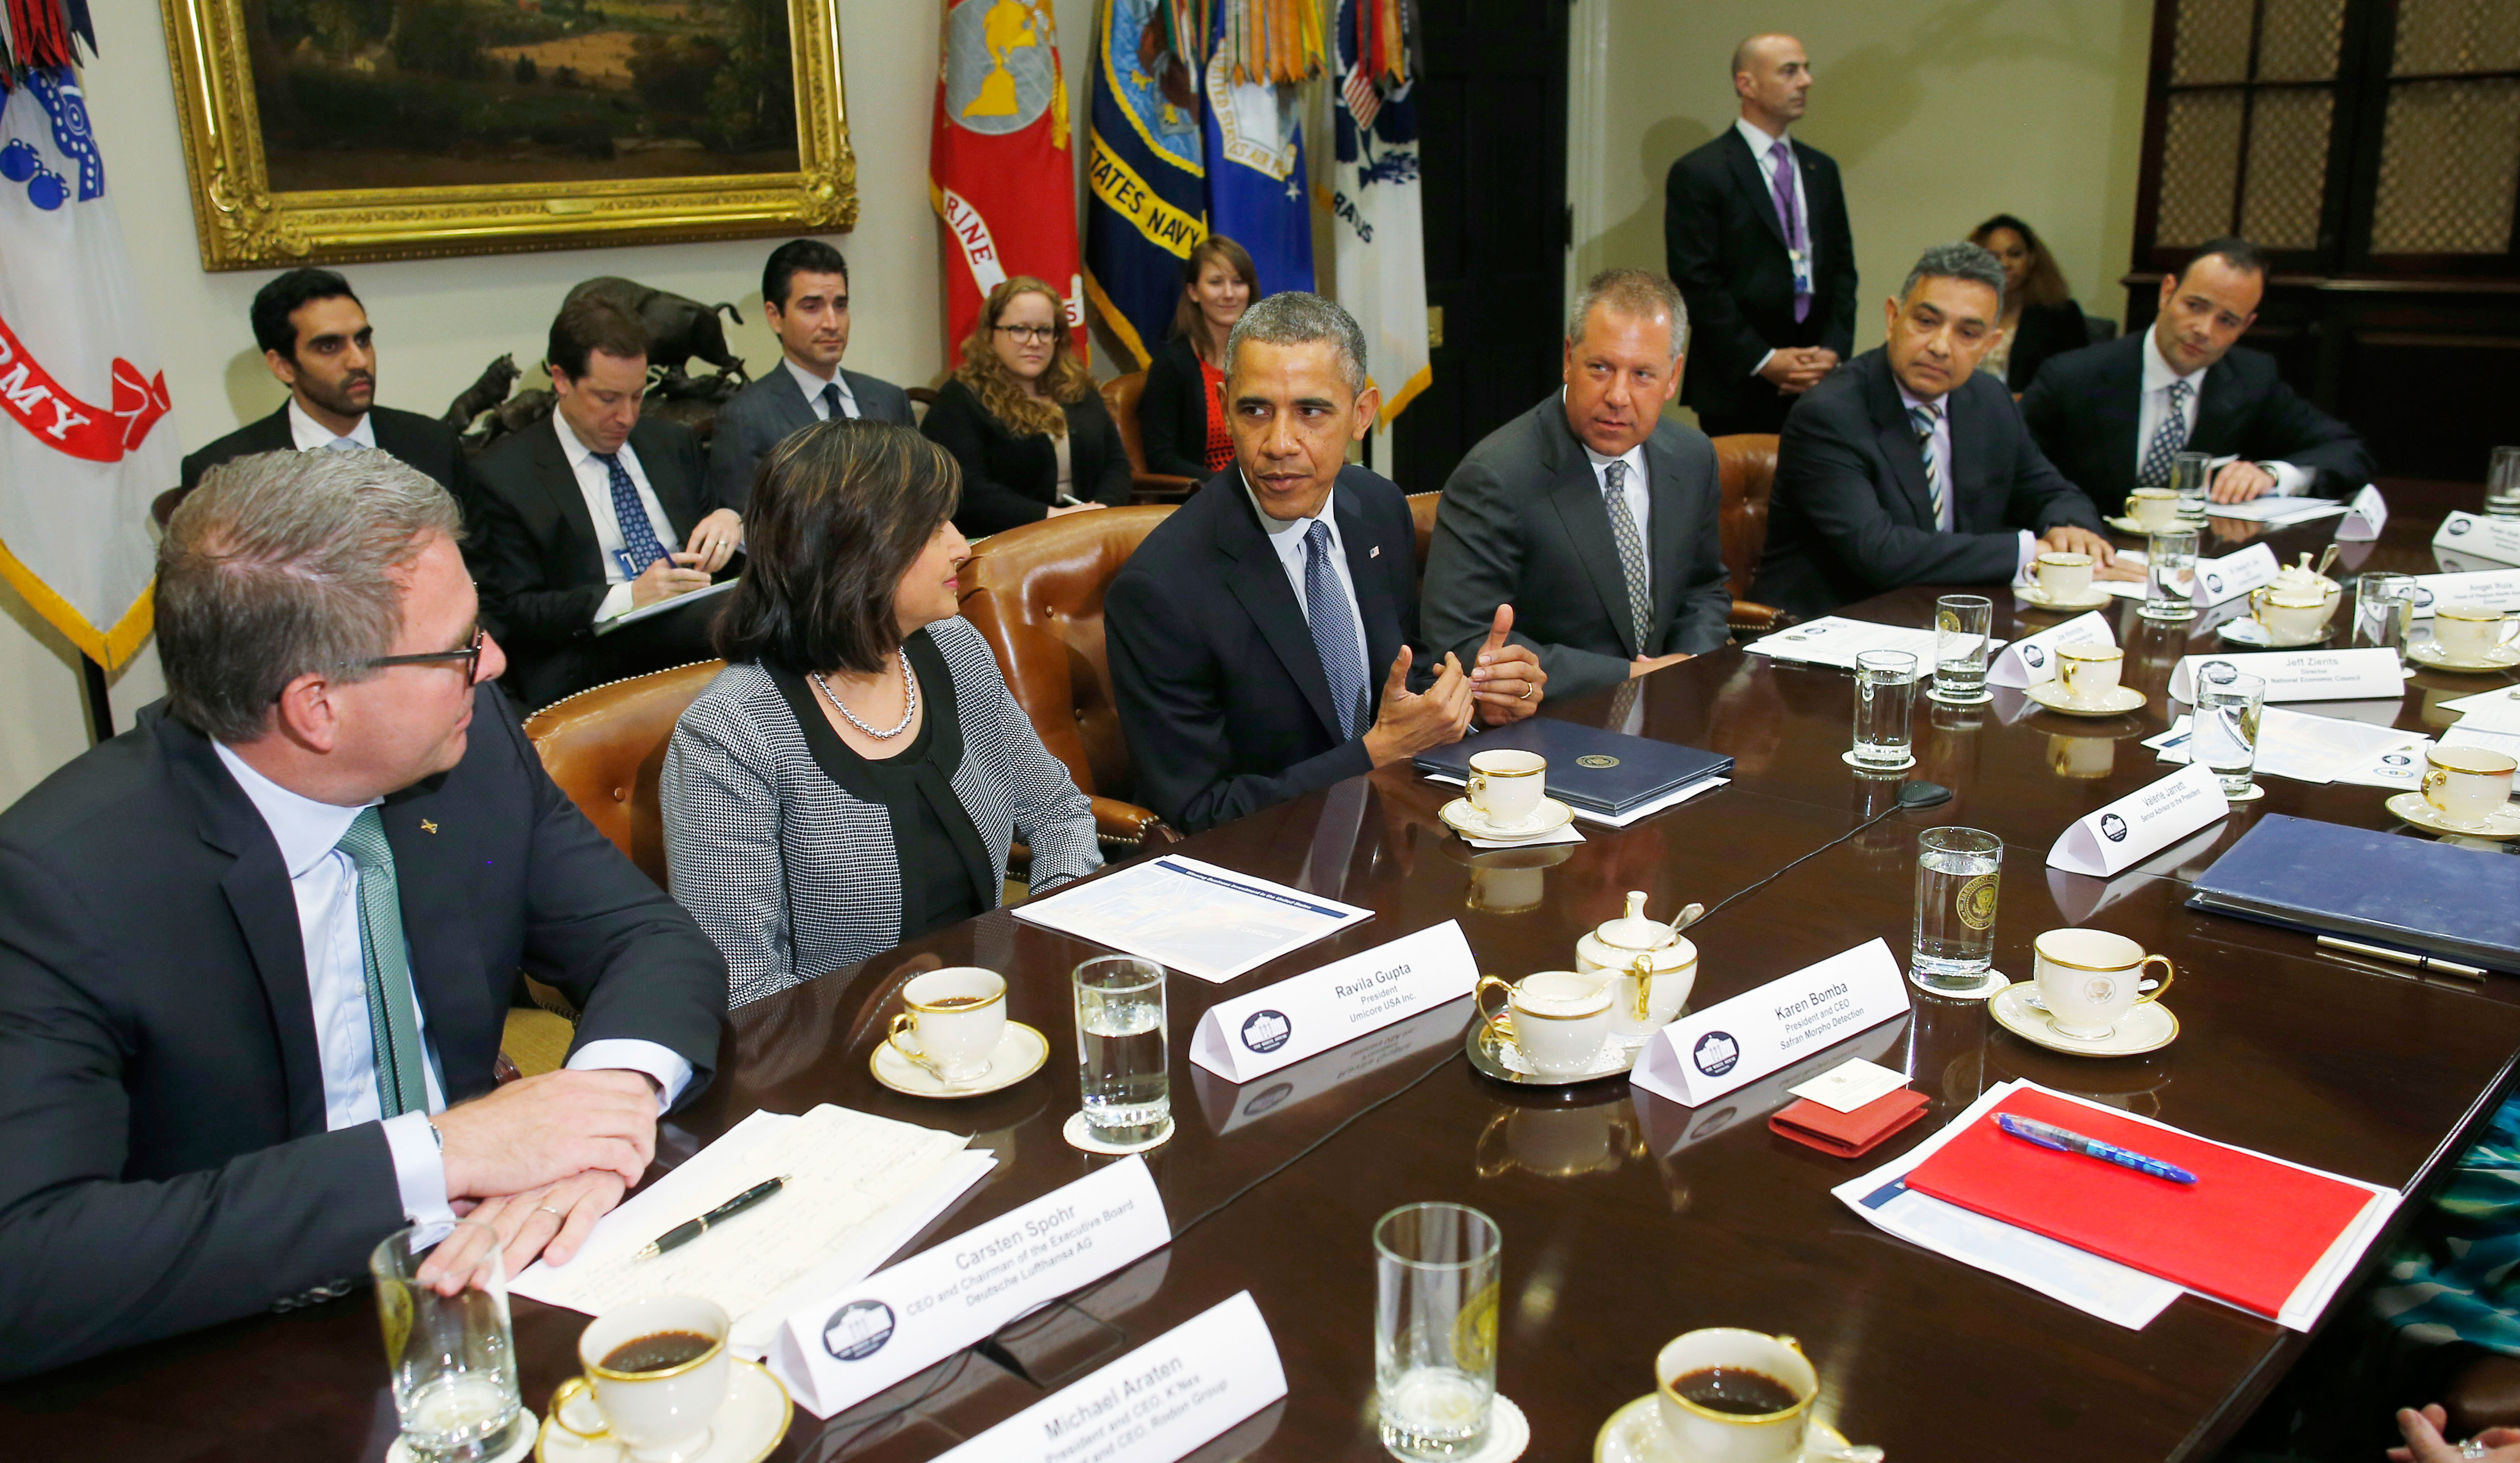 President Barack Obama meets with business leaders about creating and investing in jobs in the United States, Tuesday, May 20, 2014, in the Roosevelt Room of the White House in Washington.